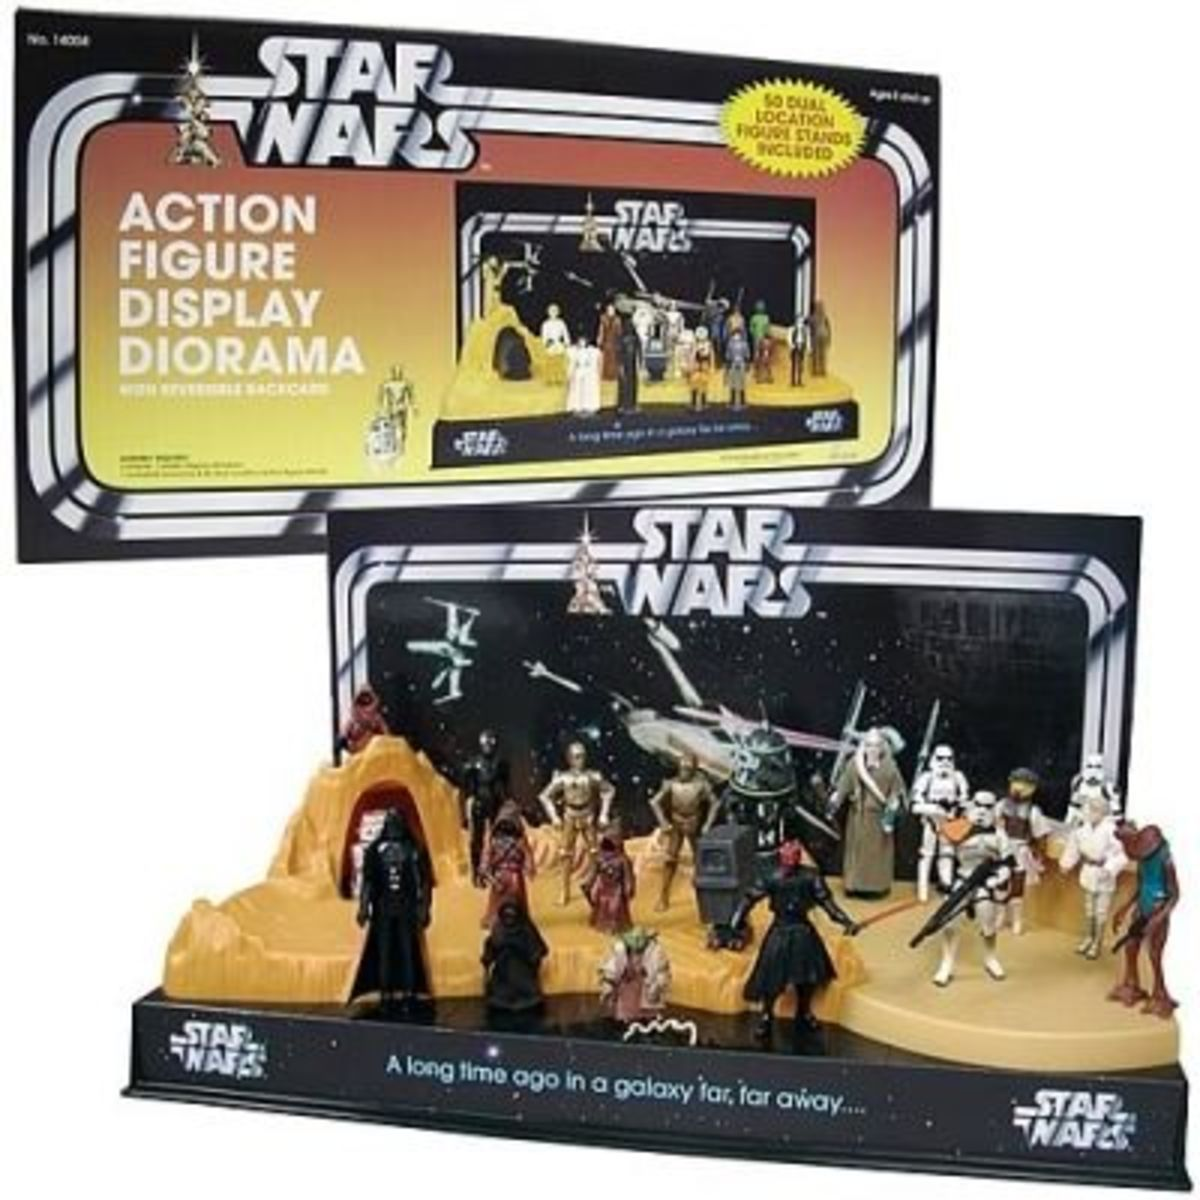 An action figure display diorama is a fun way to display your collectibles!